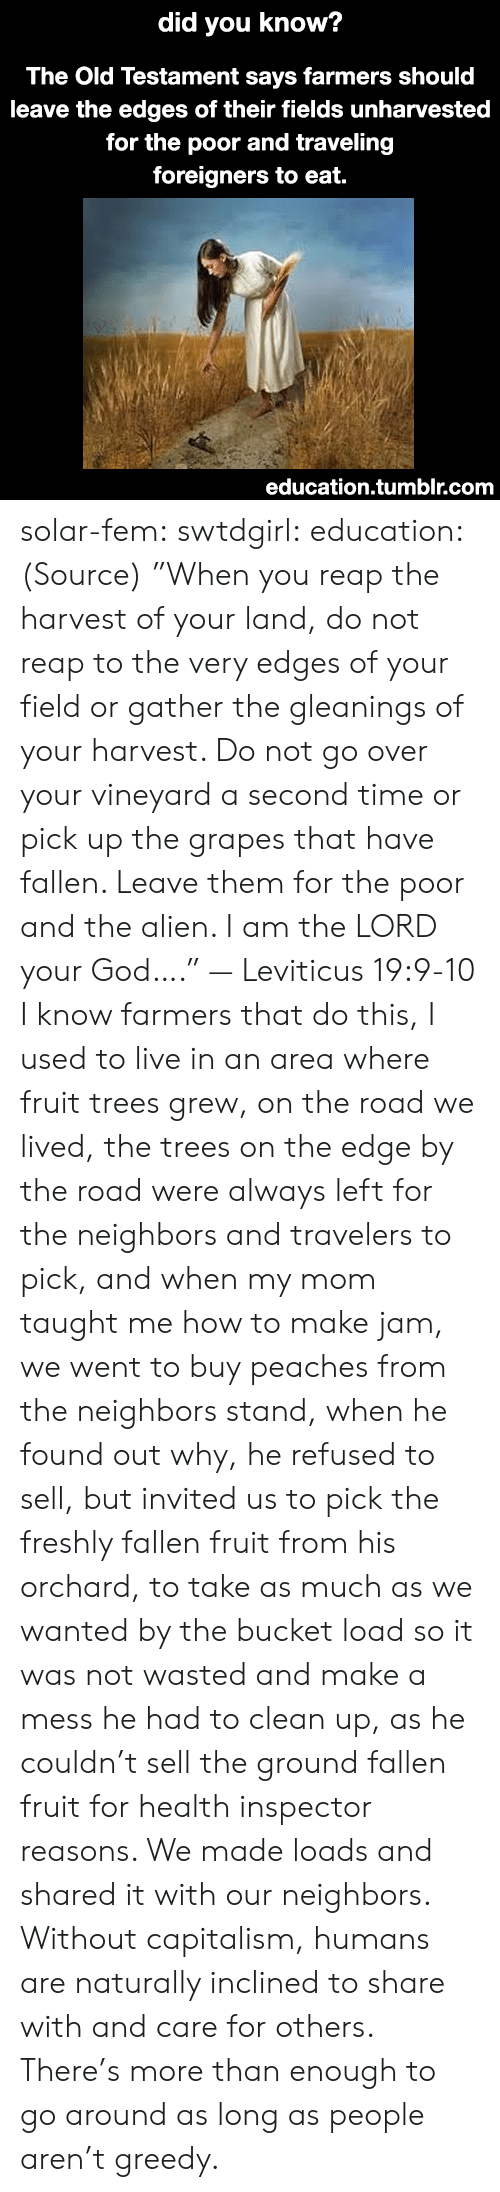 """A Mess: did  you know?  The Old Testament says farmers should  leave the edges of their fields unharvested  for the poor and traveling  foreigners to eat.  education.tumblr.com solar-fem:  swtdgirl:  education:   (Source) """"When you reap the harvest of your land, do not reap to the very edges of your field or gather the gleanings of your harvest. Do not go over your vineyard a second time or pick up the grapes that have fallen. Leave them for the poor and the alien. I am the LORD your God…."""" — Leviticus 19:9-10     I know farmers that do this, I used to live in an area where fruit trees grew, on the road we lived, the trees on the edge by the road were always left for the neighbors and travelers to pick, and when my mom taught me how to make jam, we went to buy peaches from the neighbors stand, when he found out why, he refused to sell, but invited us to pick the freshly fallen fruit from his orchard, to take as much as we wanted by the bucket load so it was not wasted and make a mess he had to clean up, as he couldn't sell the ground fallen fruit for health inspector reasons. We made loads and shared it with our neighbors.  Without capitalism, humans are naturally inclined to share with and care for others. There's more than enough to go around as long as people aren't greedy."""